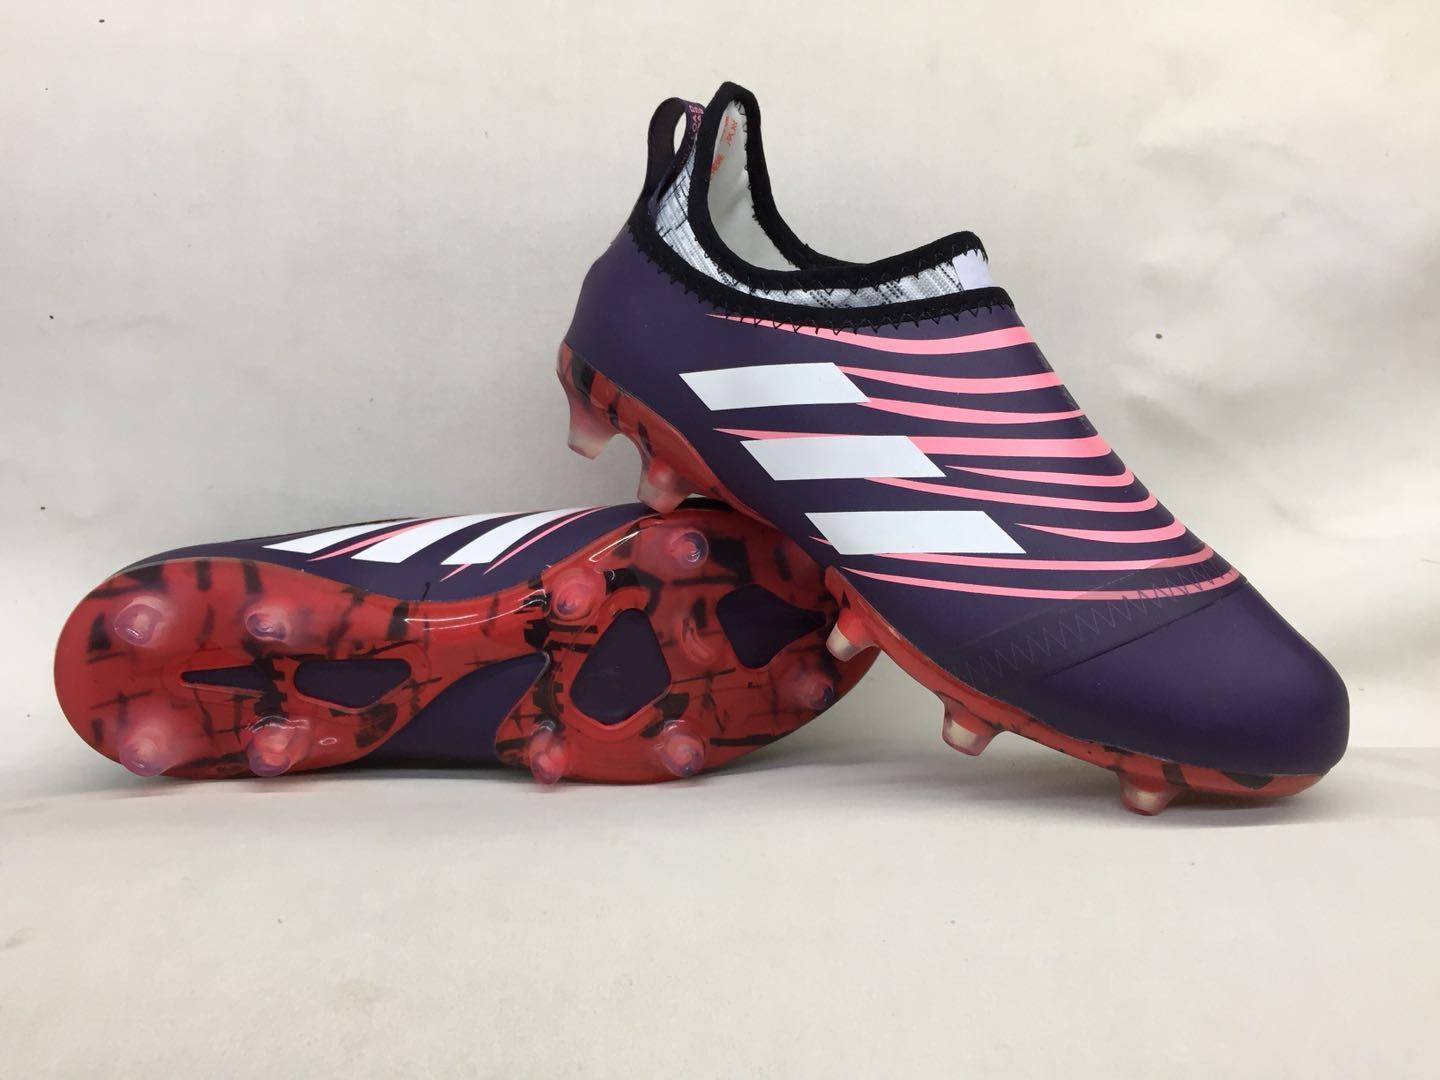 d54b85cbb9f Adidas Glitch Skin 17 FG Soccer Shoes Purple White Red Pink